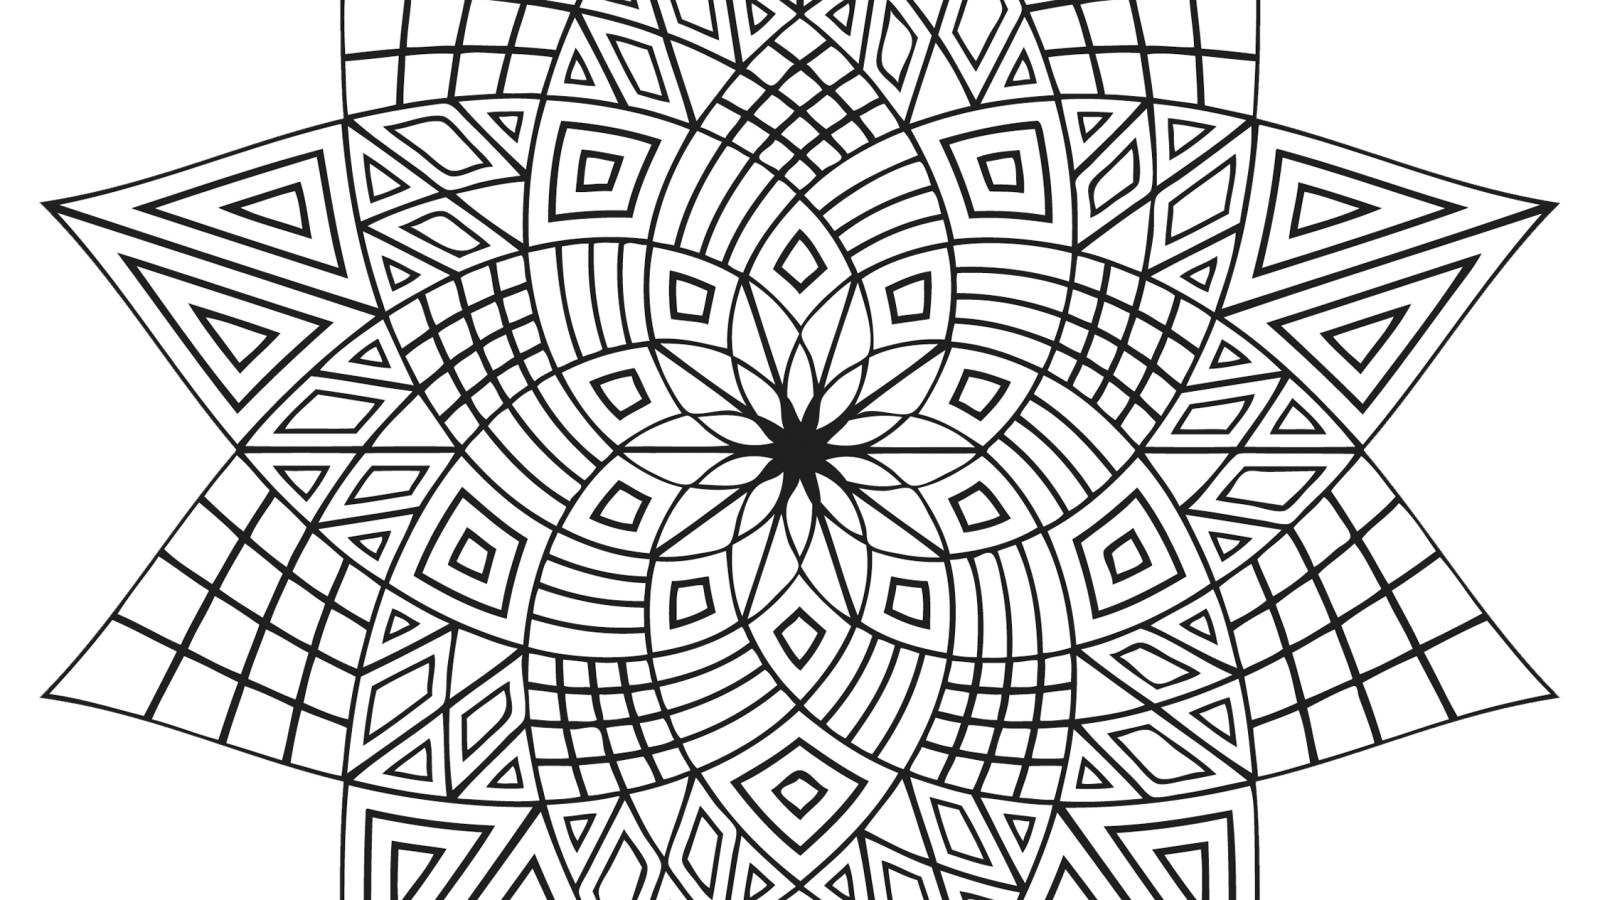 Abstract Shapes Coloring Pages : Geometric coloring pages only